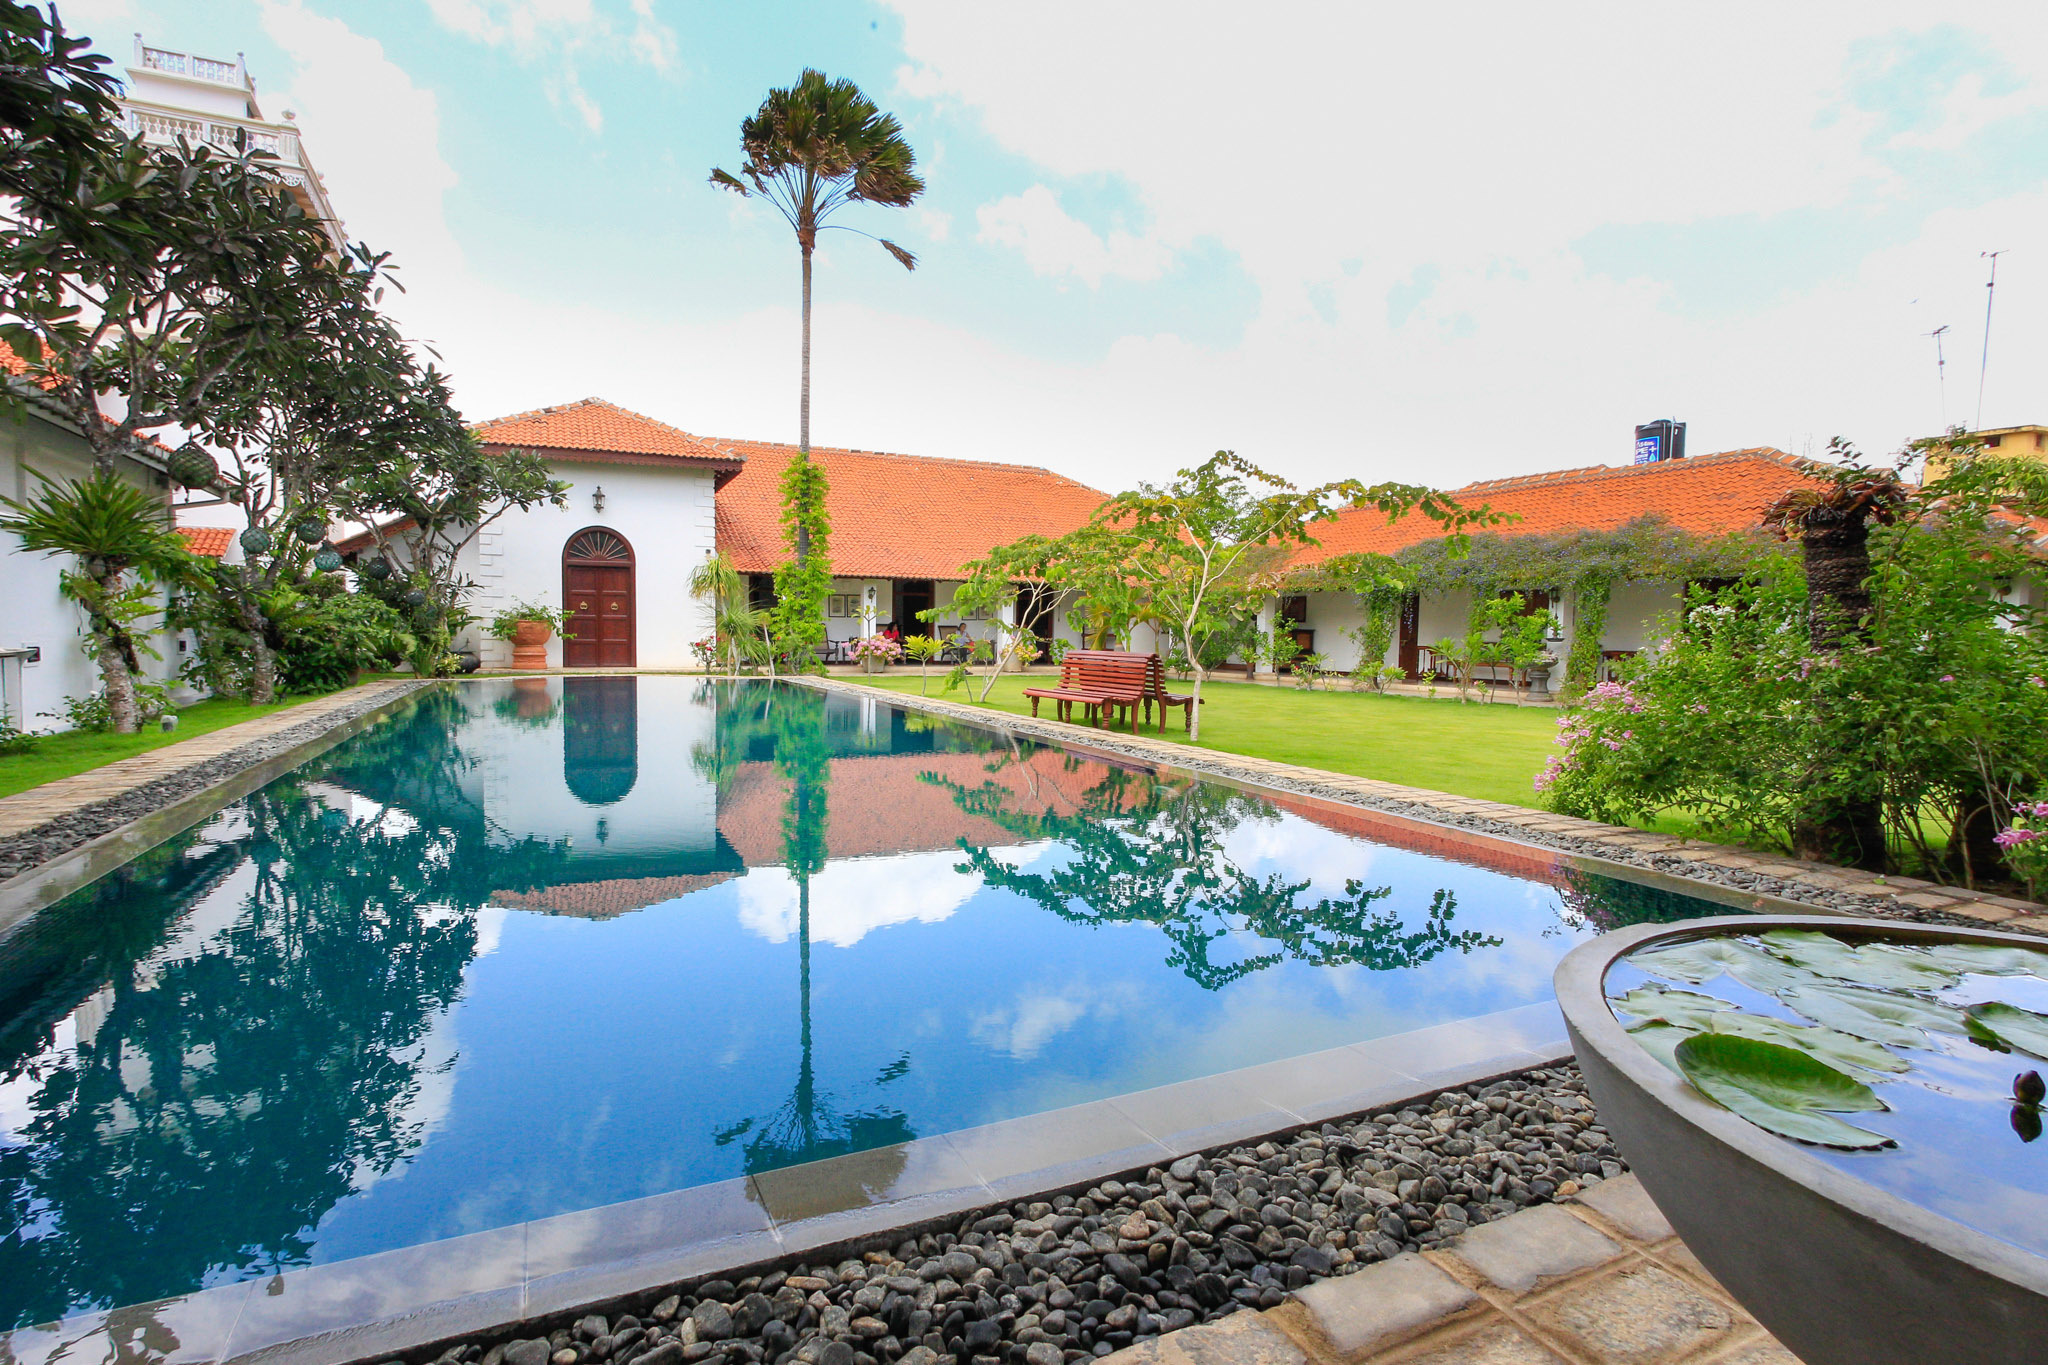 Bethany101 is a boutique hotel in Puttalam